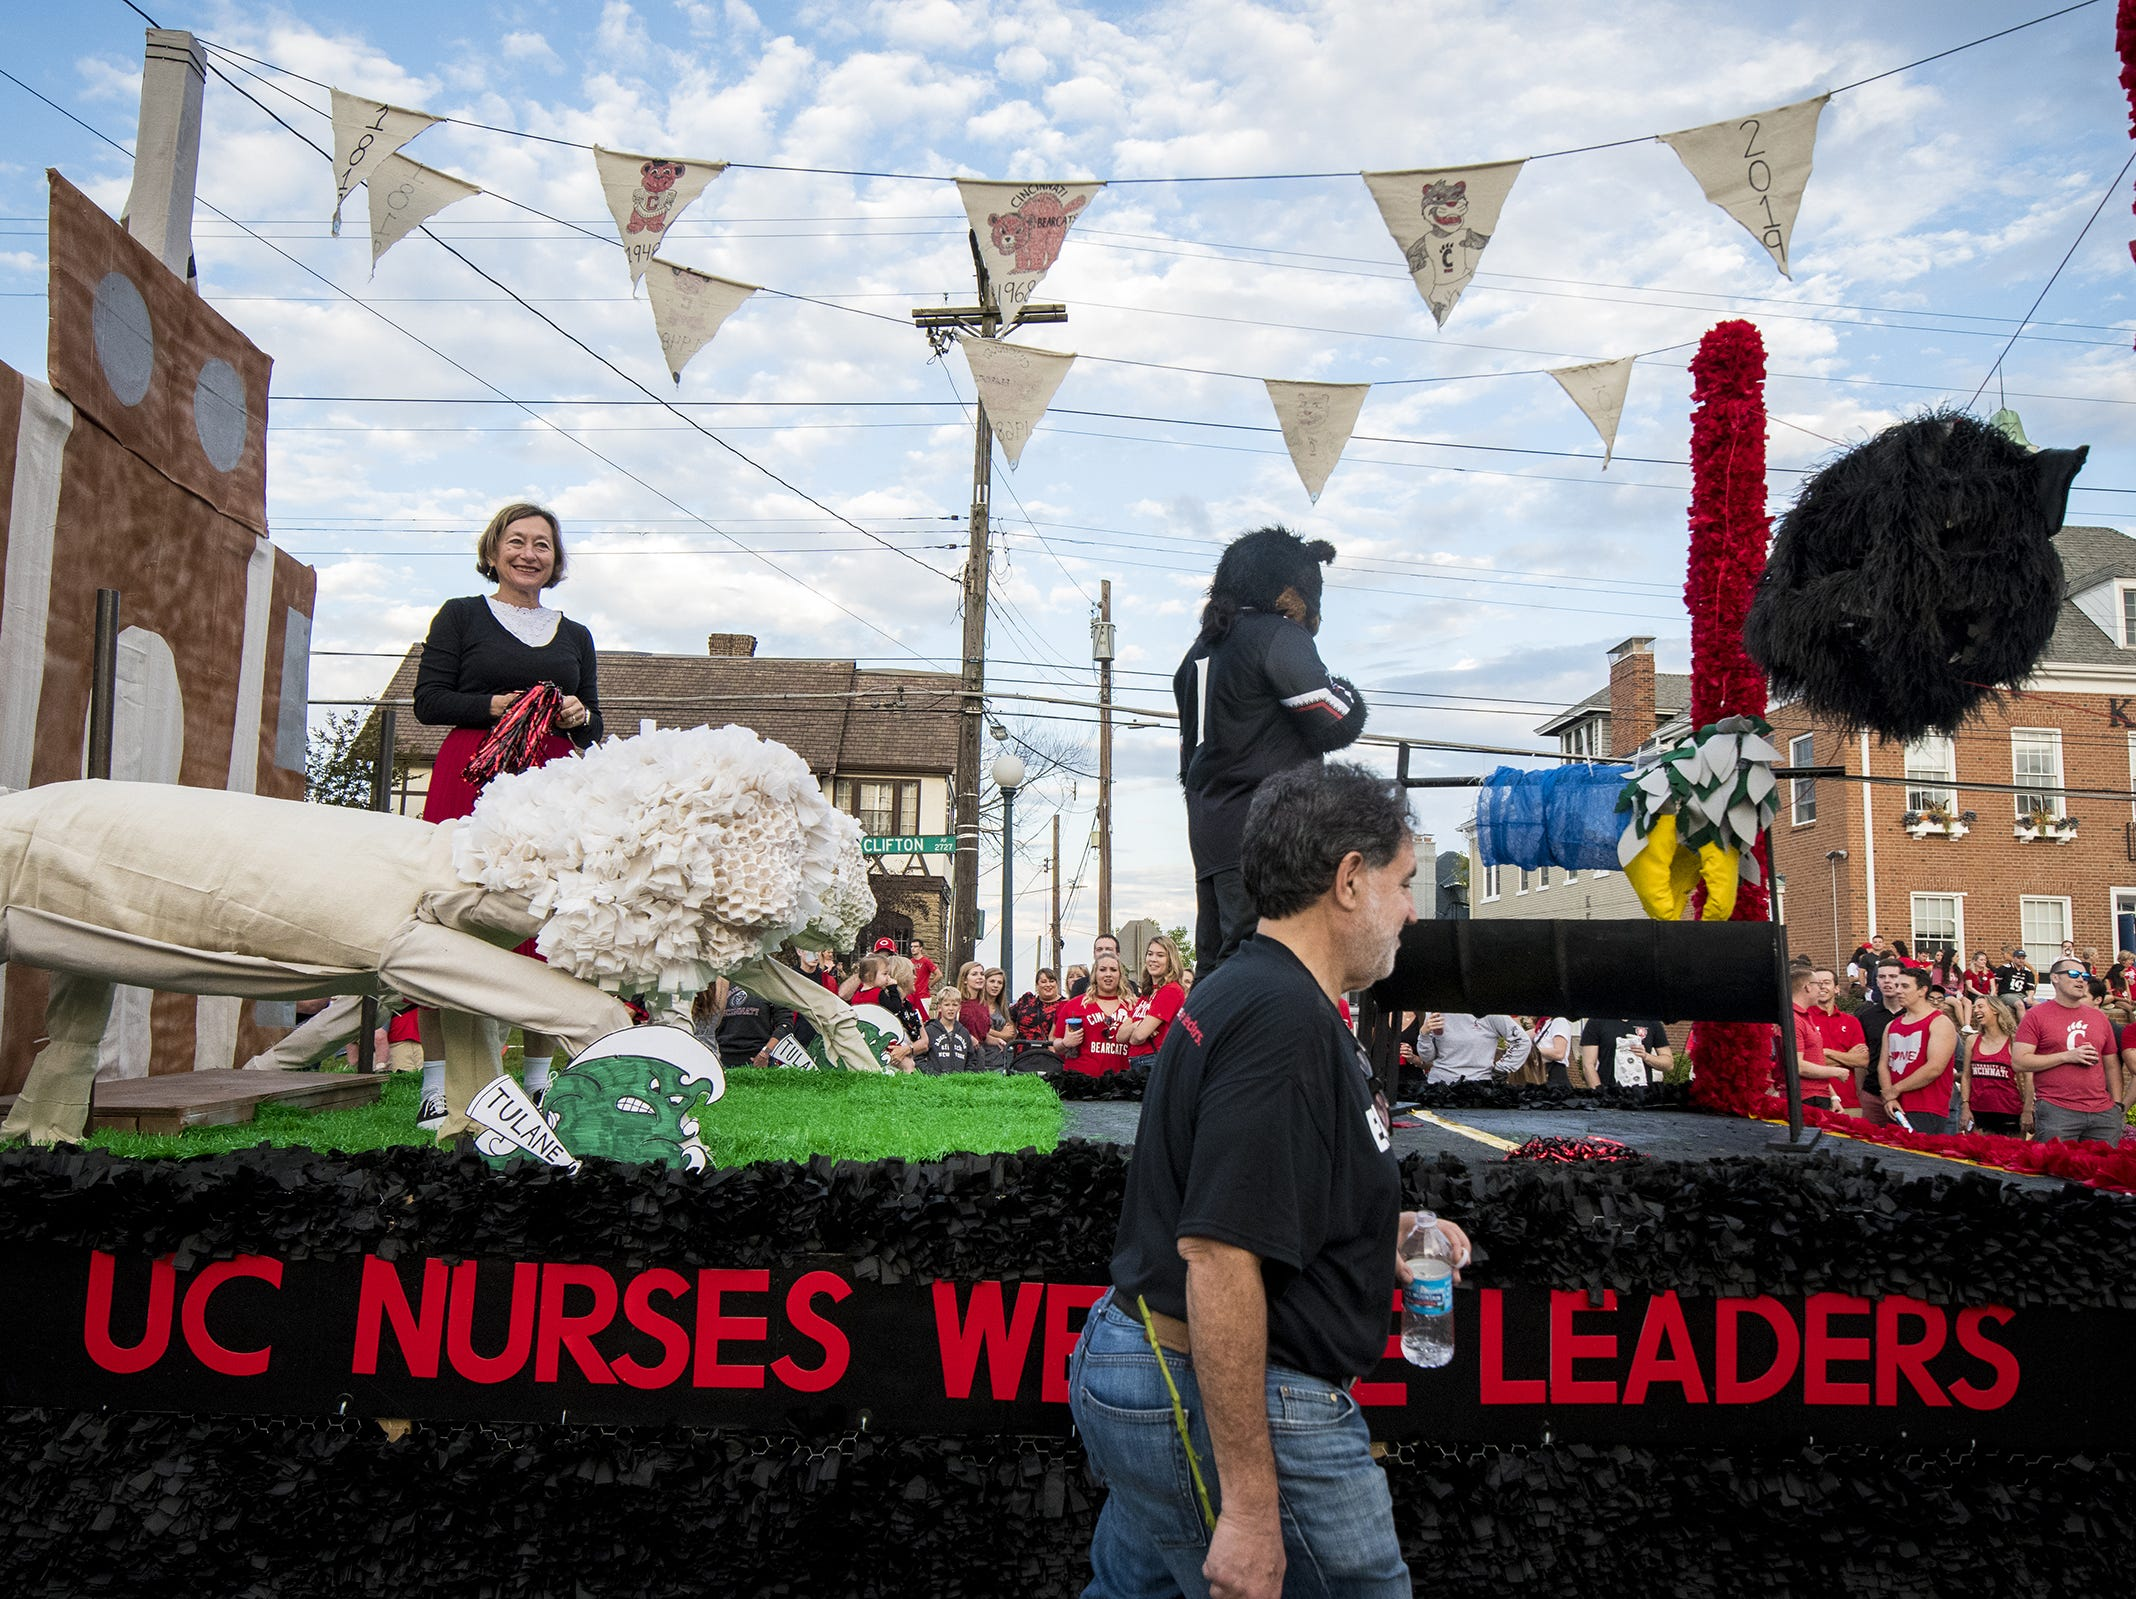 Vintage bearcat logos adorn the UC nursing school's float in the annual University of Cincinnati Homecoming parade.